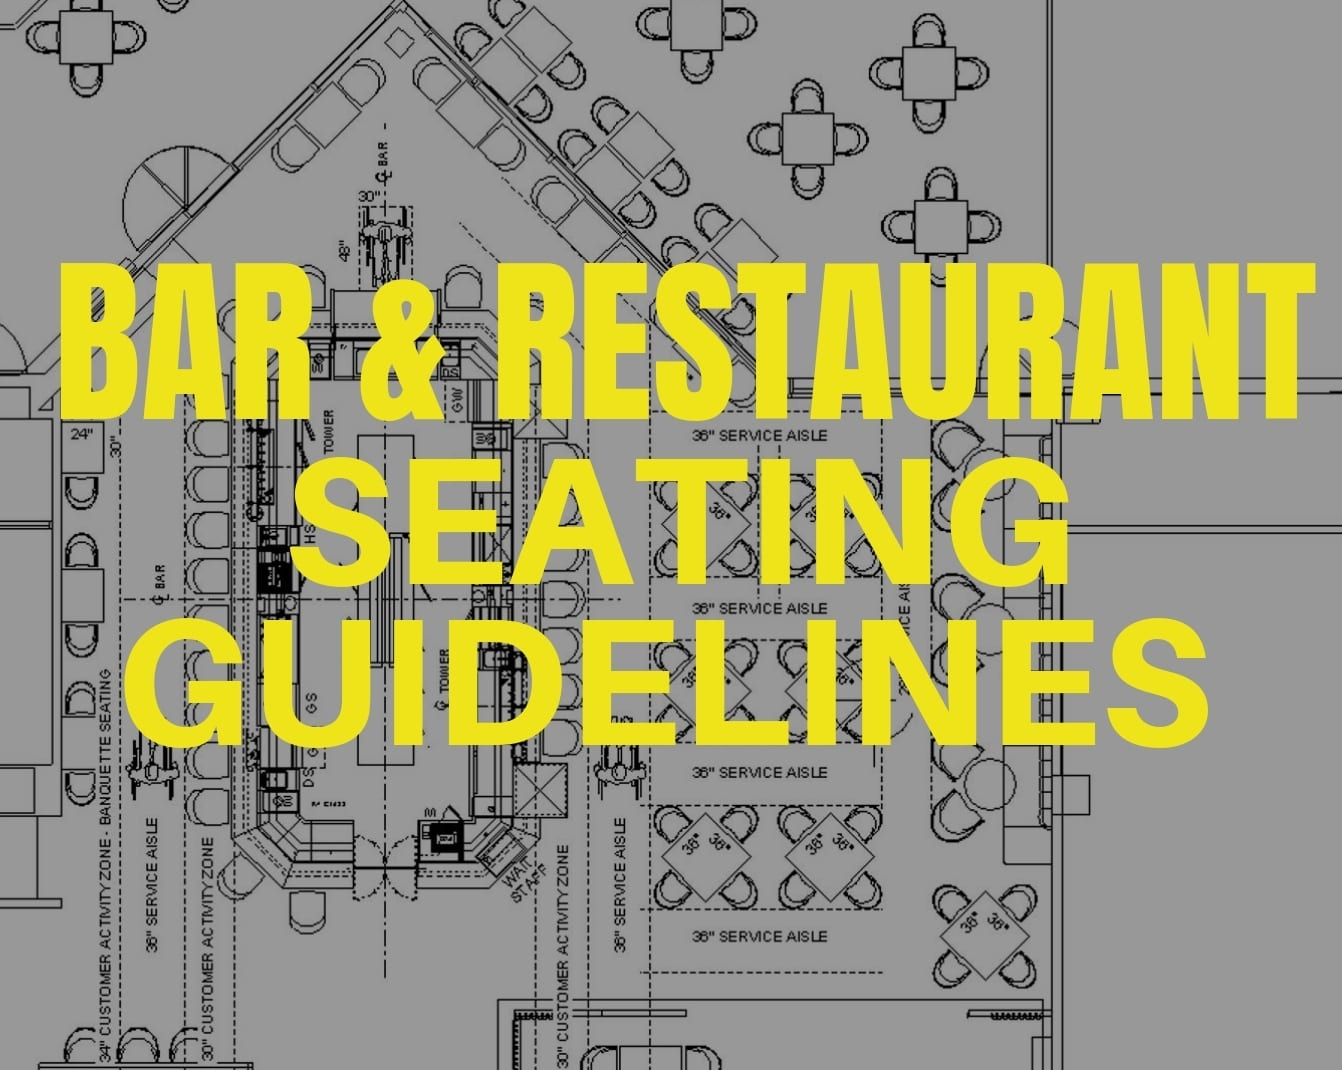 BAR-SEATING-GUIDELINES-TN